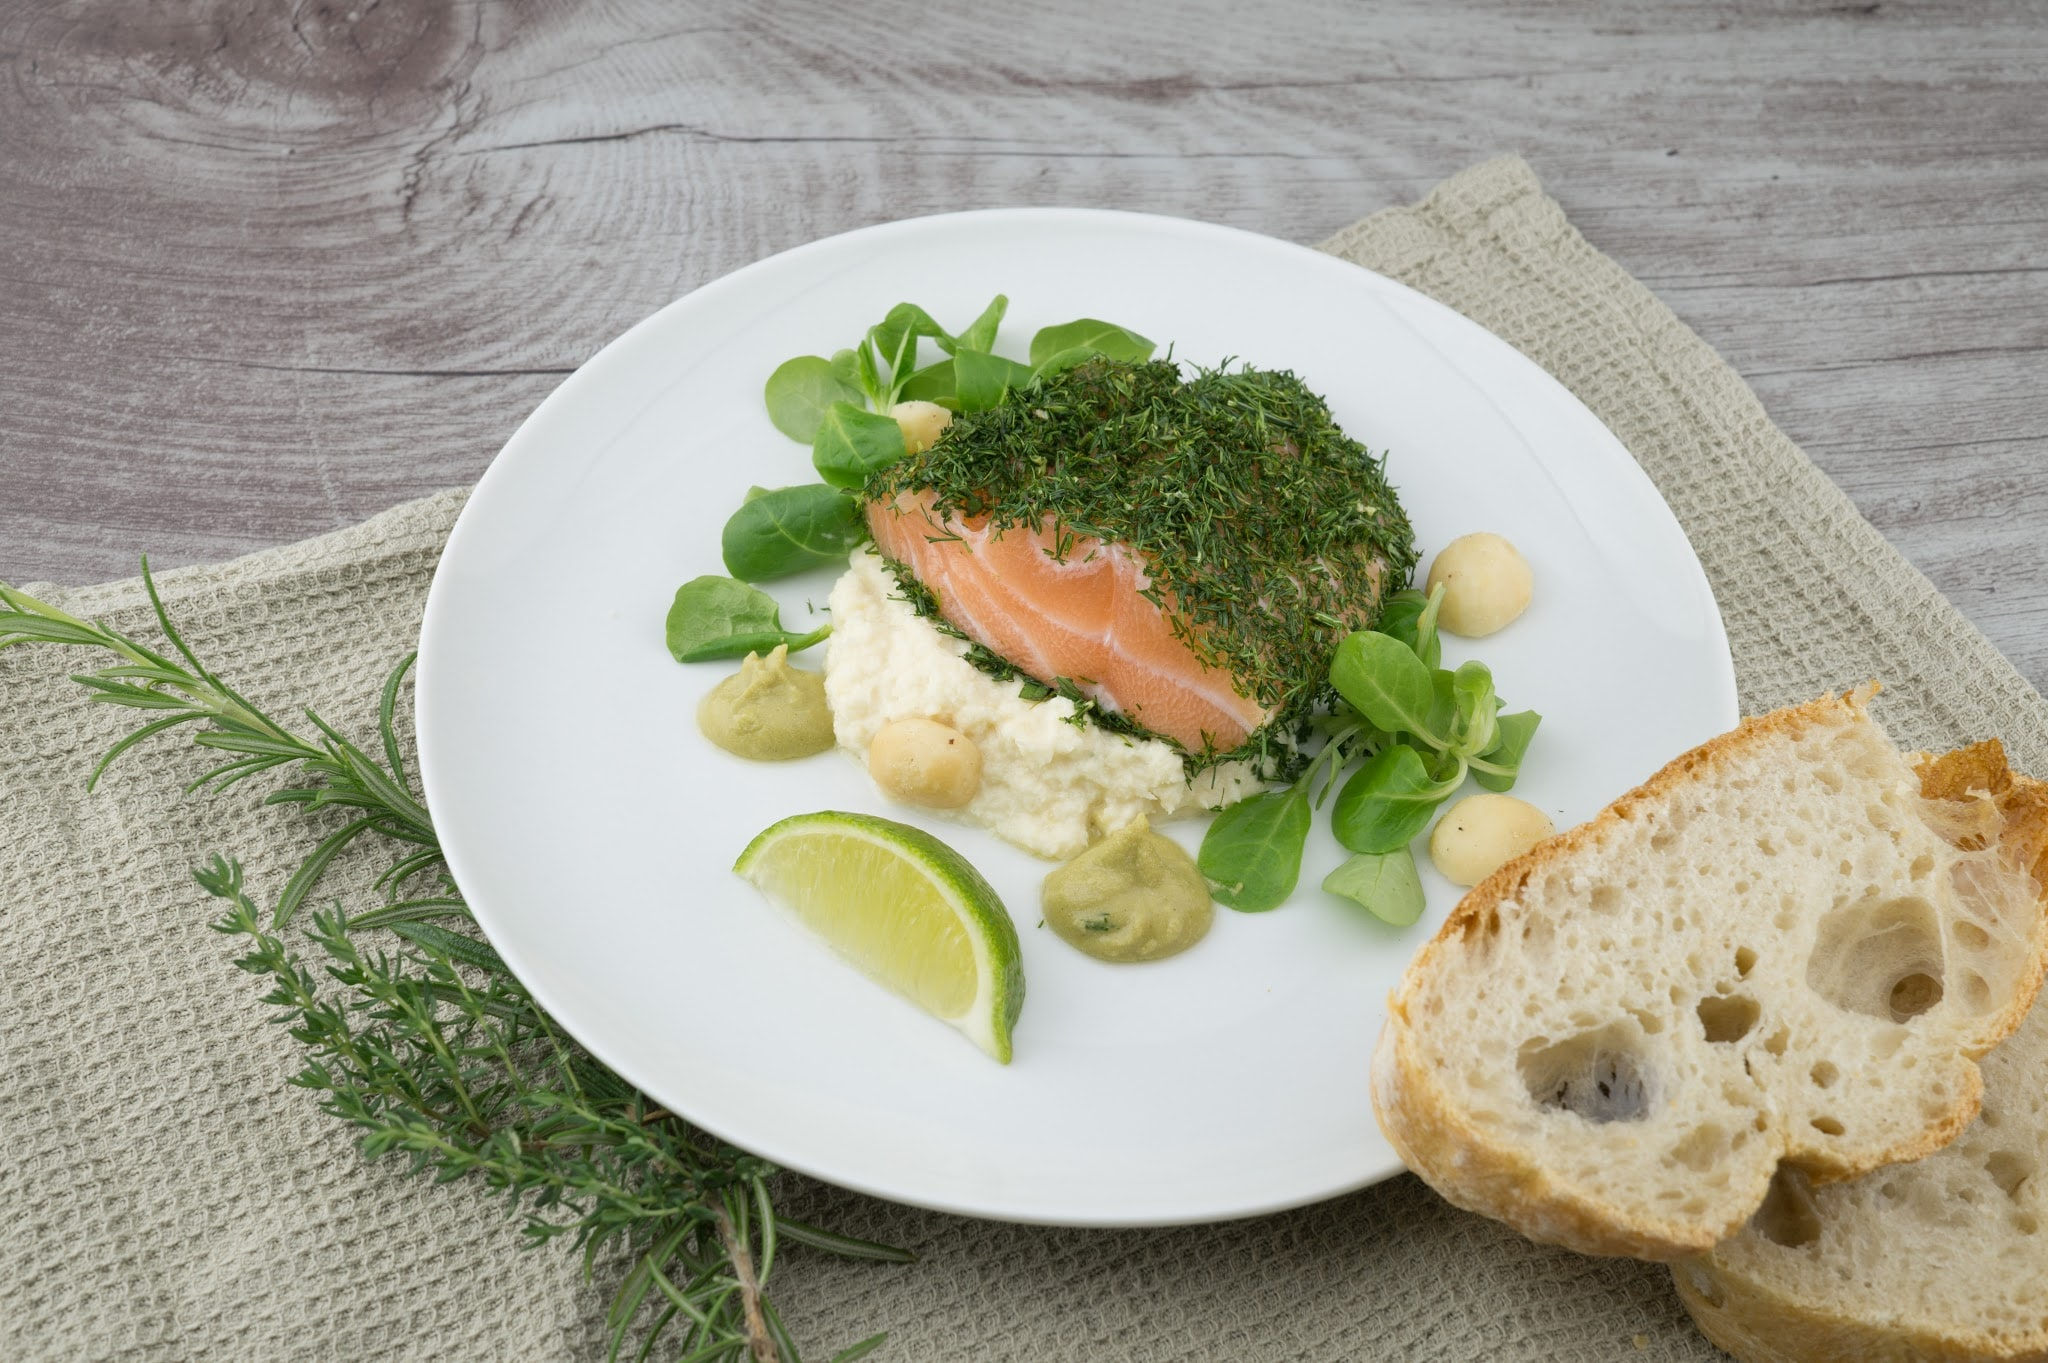 Plate with fresh salmon, lime, dill, and herbs and bread